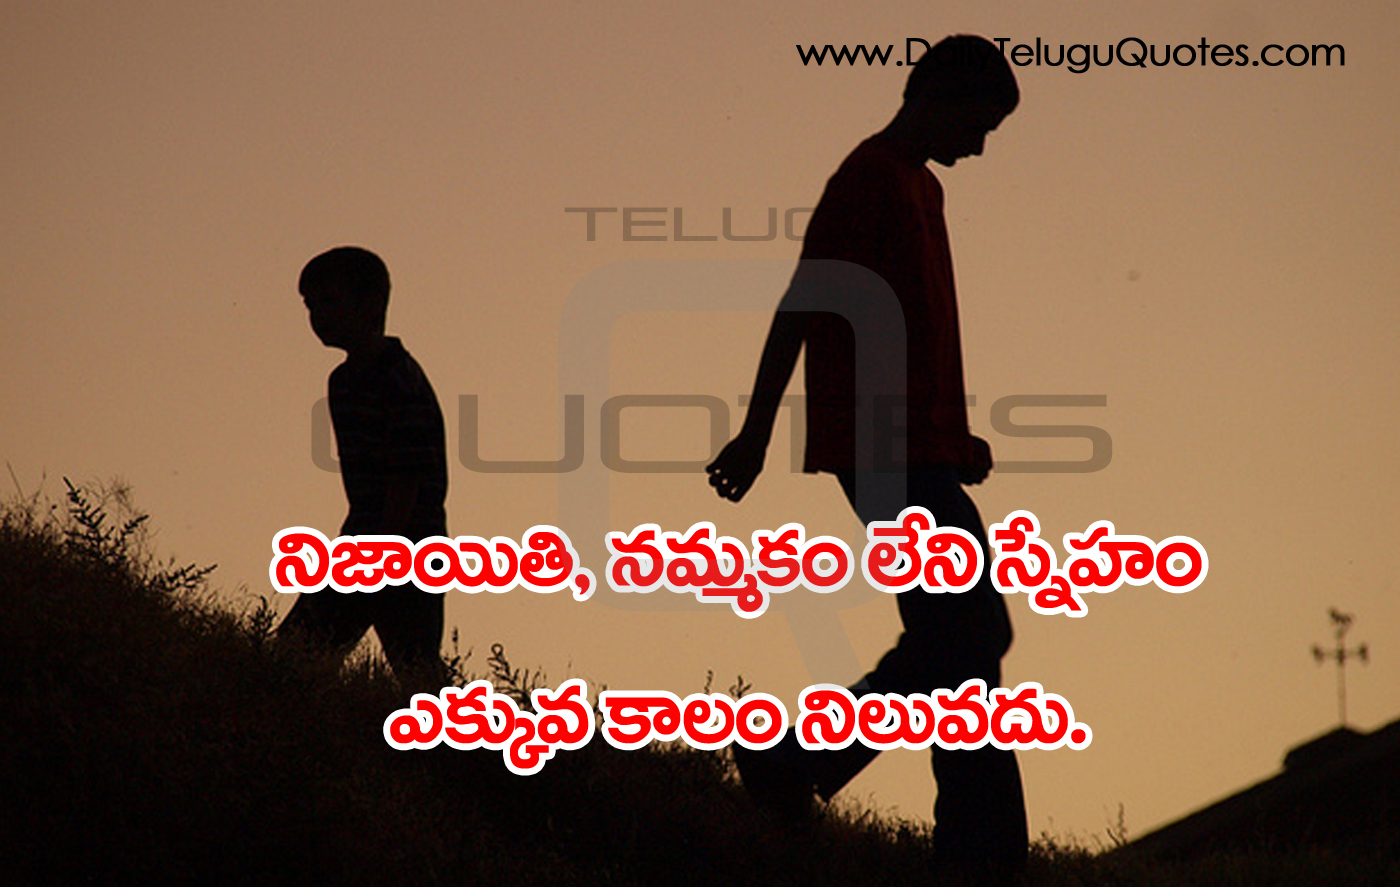 Beautiful Quotes About Friendship Best Friendship Feelings And Wallpapers Telugu Beautiful Quotes